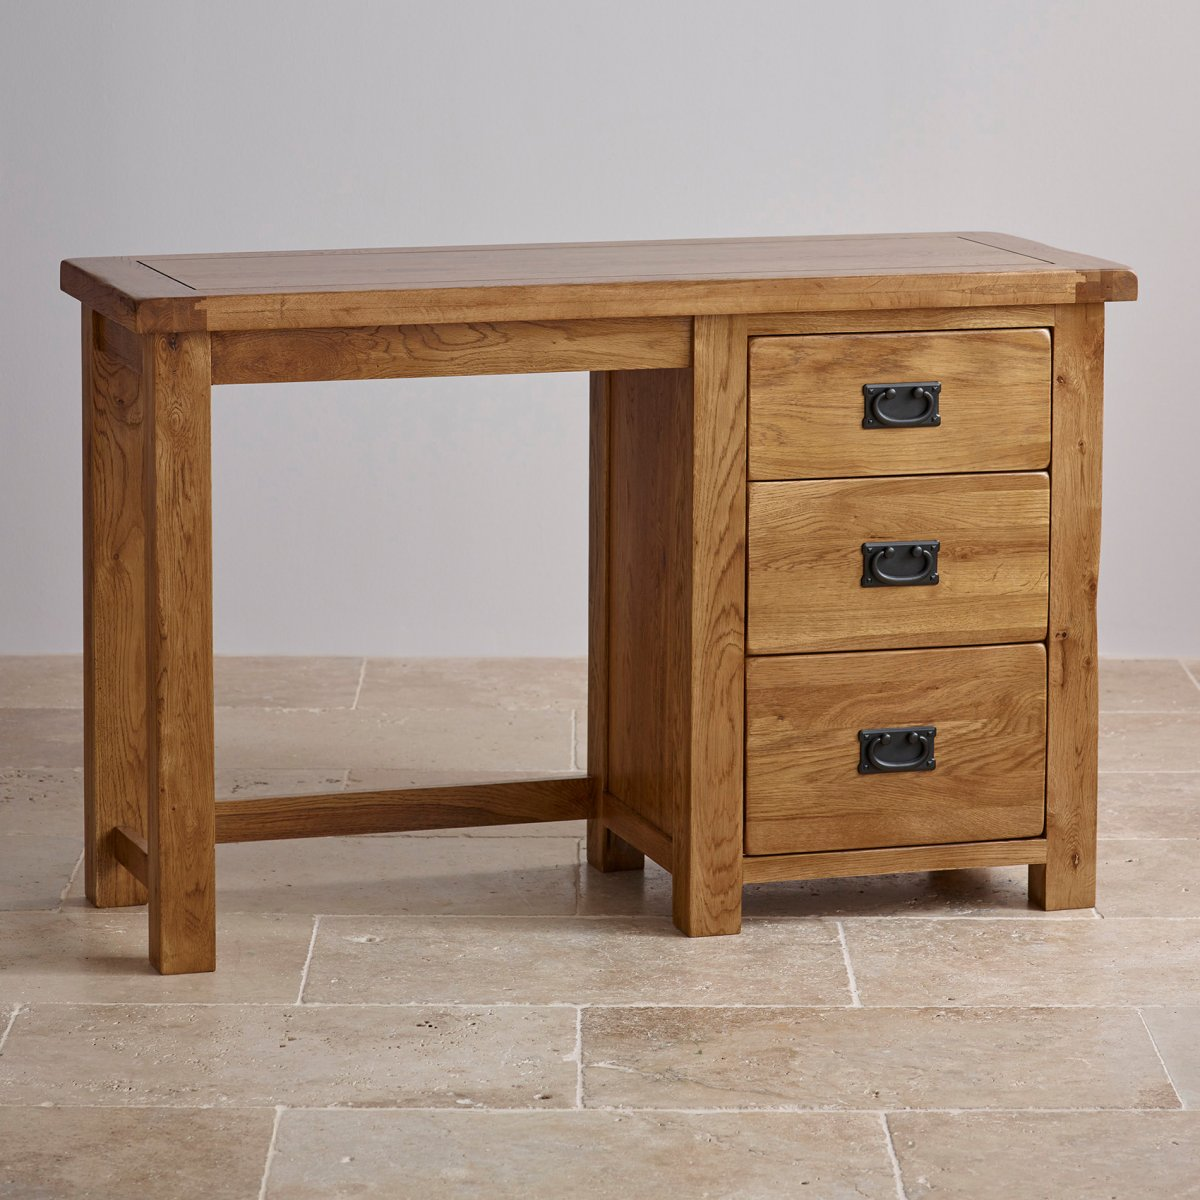 Original rustic dressing table in solid oak